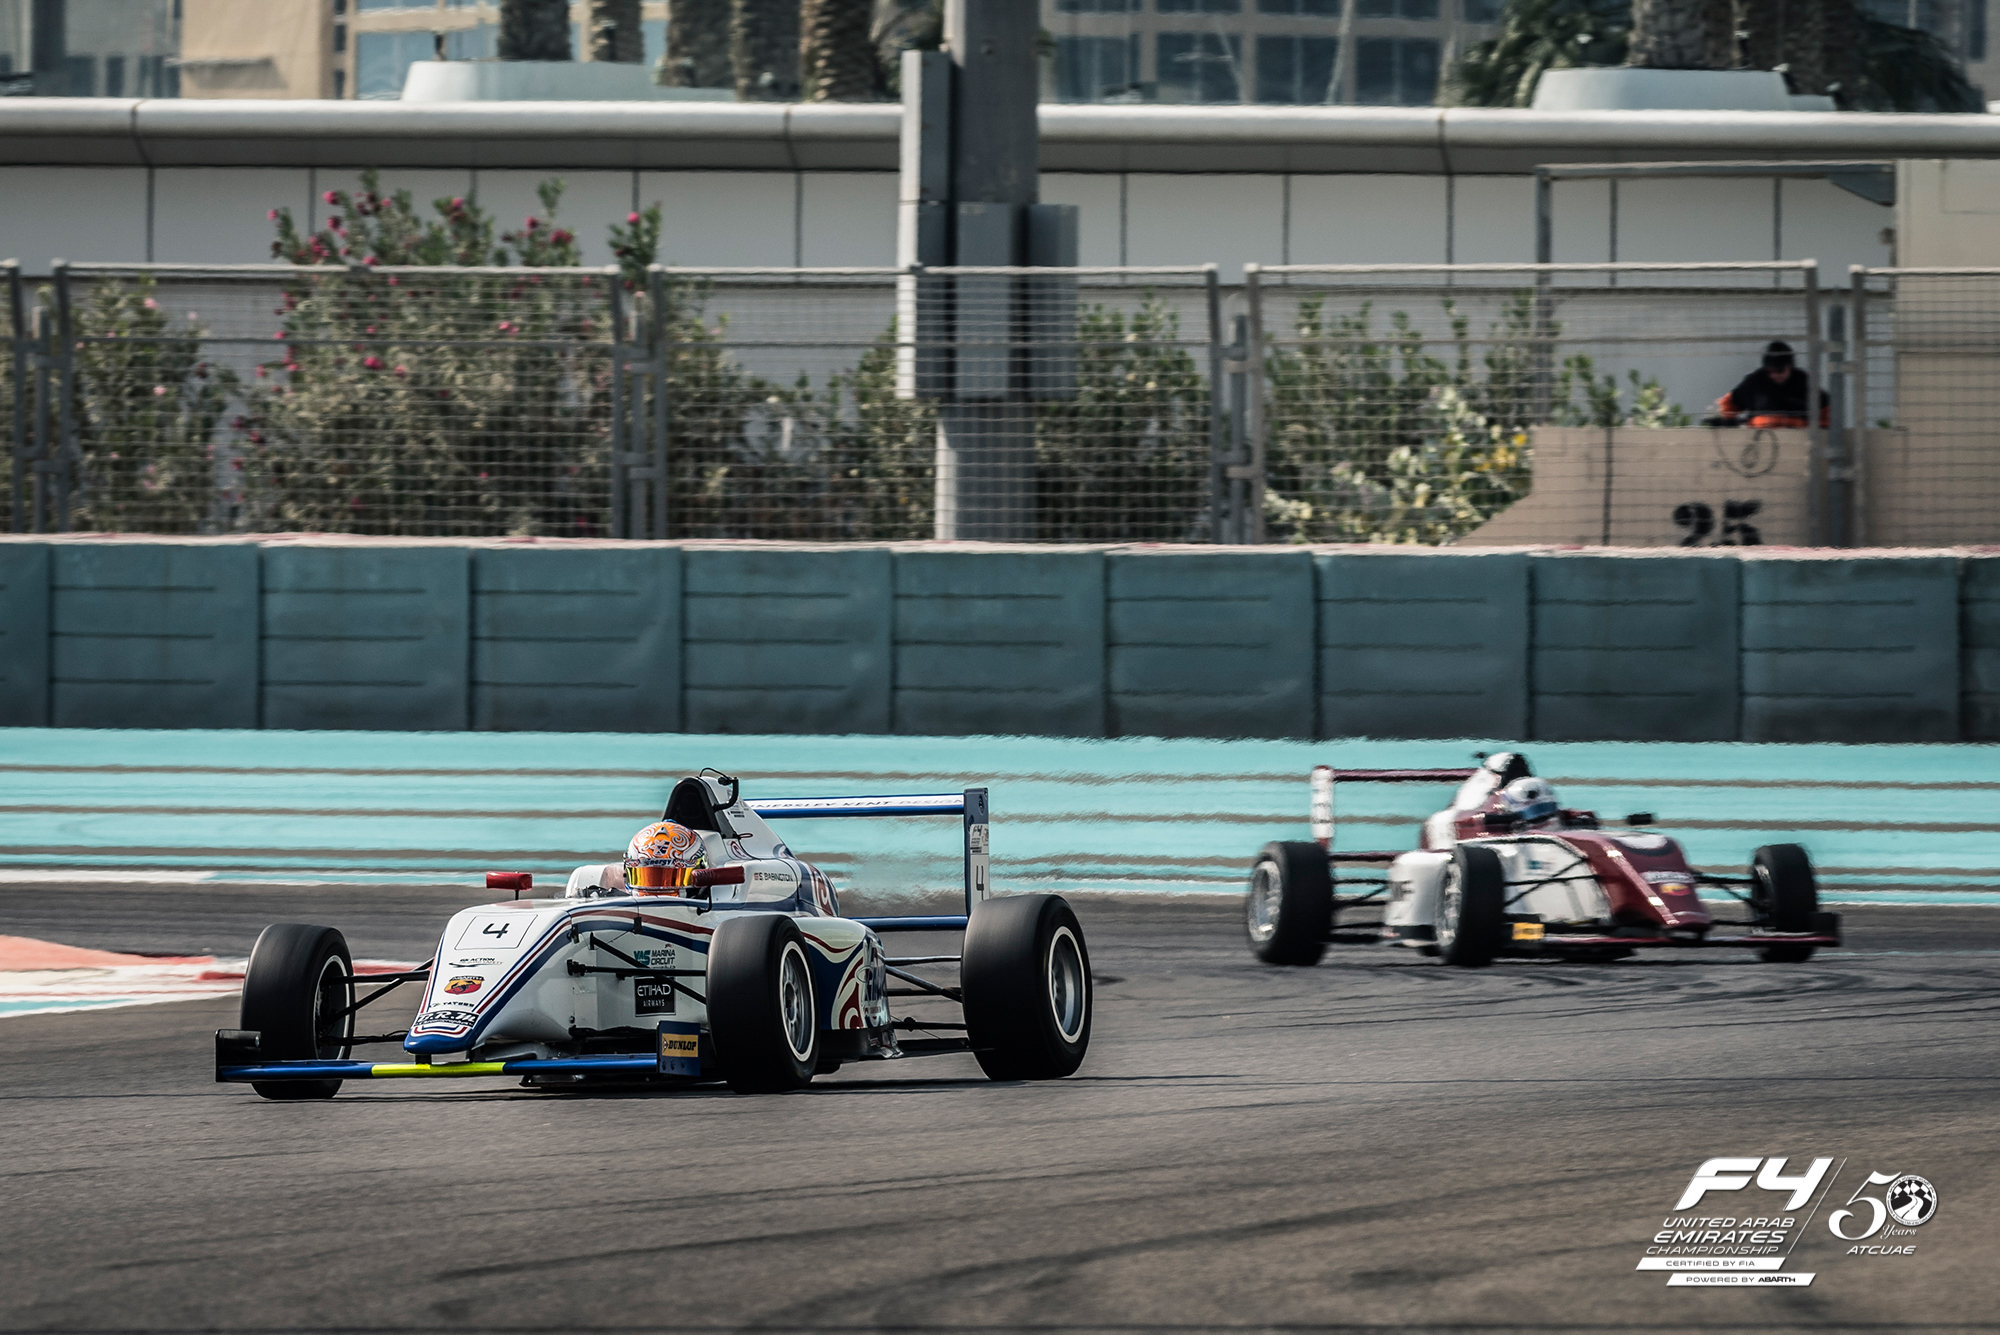 2016 16 12   F4 Second Round   Abu Dhabi 2 1